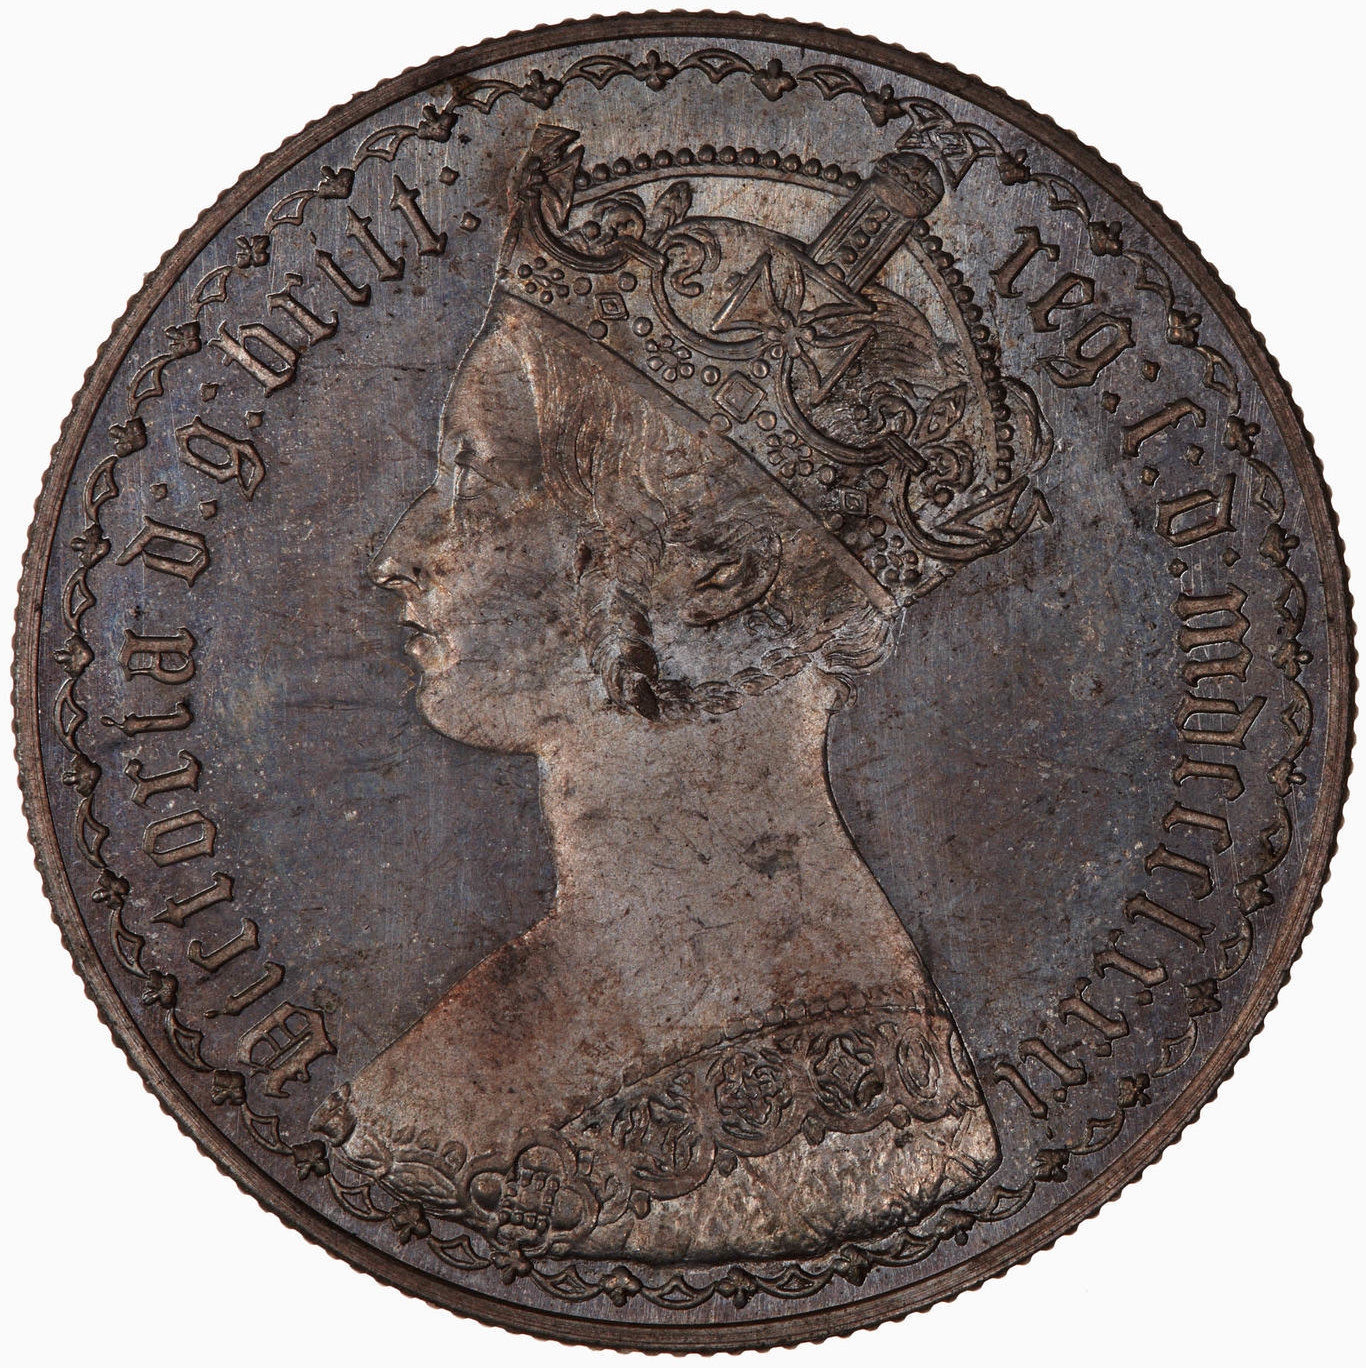 Florin 1881: Photo Coin - Florin, Queen Victoria, Great Britain, 1881